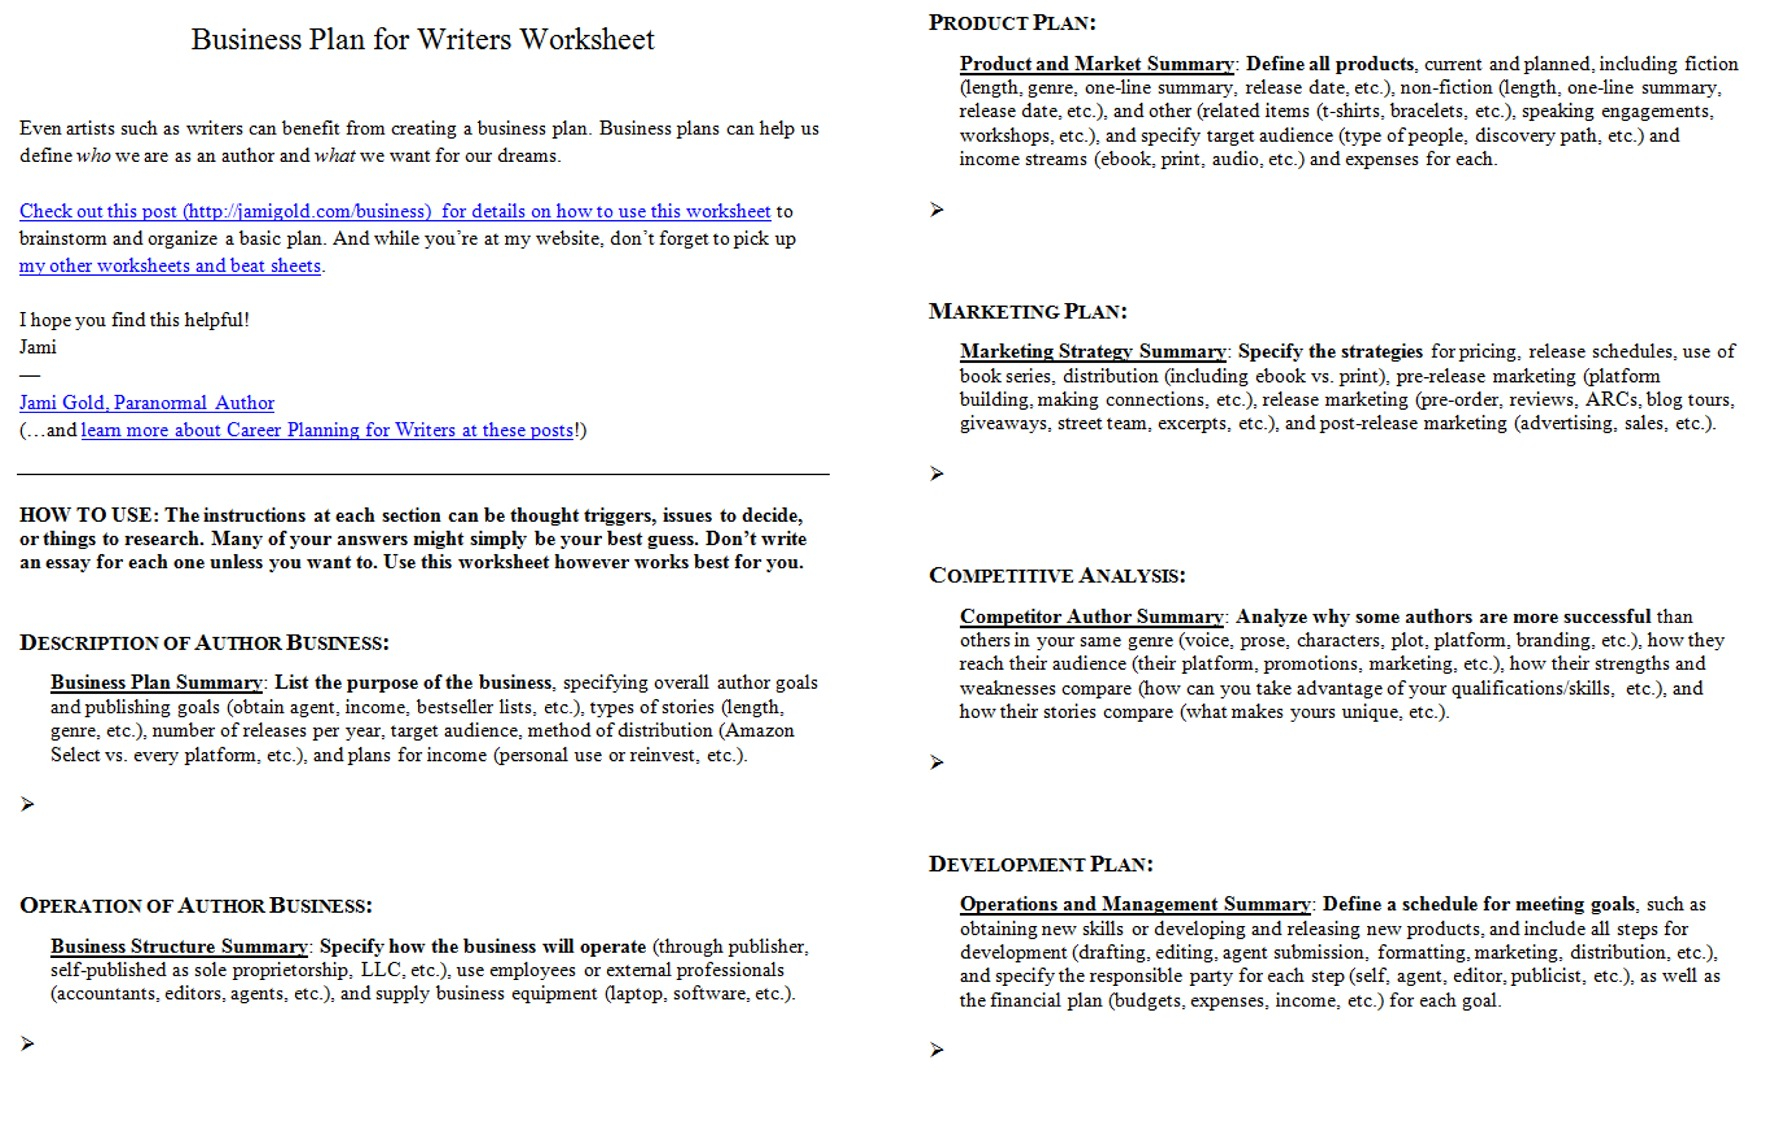 Aldiablosus  Pleasing Worksheets For Writers  Jami Gold Paranormal Author With Lovely Screen Shot Of Both Pages Of The Business Plan For Writers Worksheet With Beauteous Las Posadas Worksheets Also Geography Printable Worksheets In Addition Graphing Worksheets For Rd Grade And Long Vowel Short Vowel Worksheet As Well As Heart Dissection Lab Worksheet Additionally Noun Worksheet St Grade From Jamigoldcom With Aldiablosus  Lovely Worksheets For Writers  Jami Gold Paranormal Author With Beauteous Screen Shot Of Both Pages Of The Business Plan For Writers Worksheet And Pleasing Las Posadas Worksheets Also Geography Printable Worksheets In Addition Graphing Worksheets For Rd Grade From Jamigoldcom